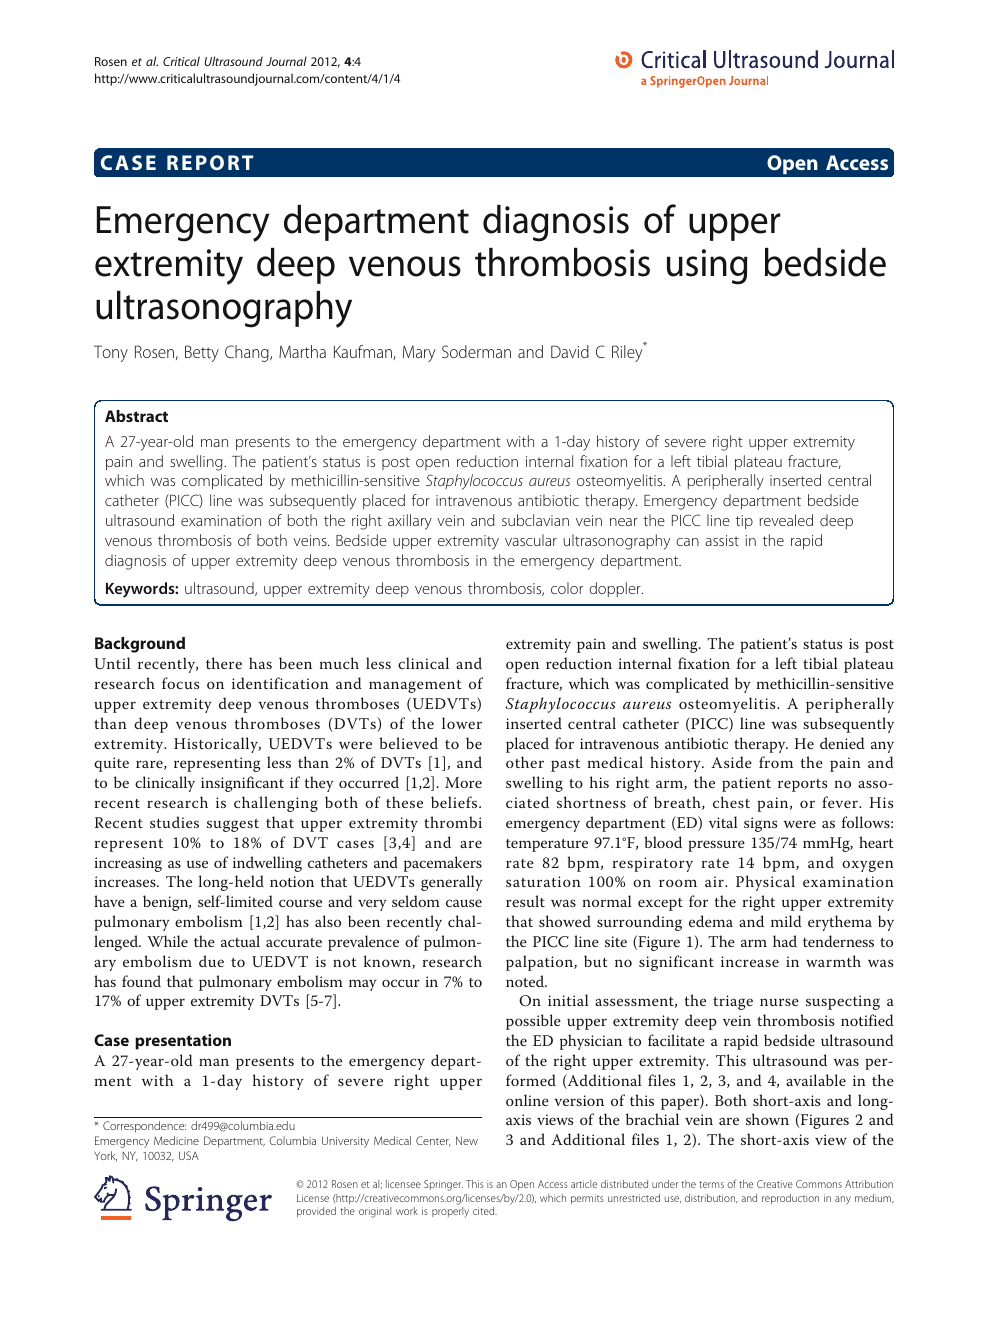 Emergency department diagnosis of upper extremity deep venous